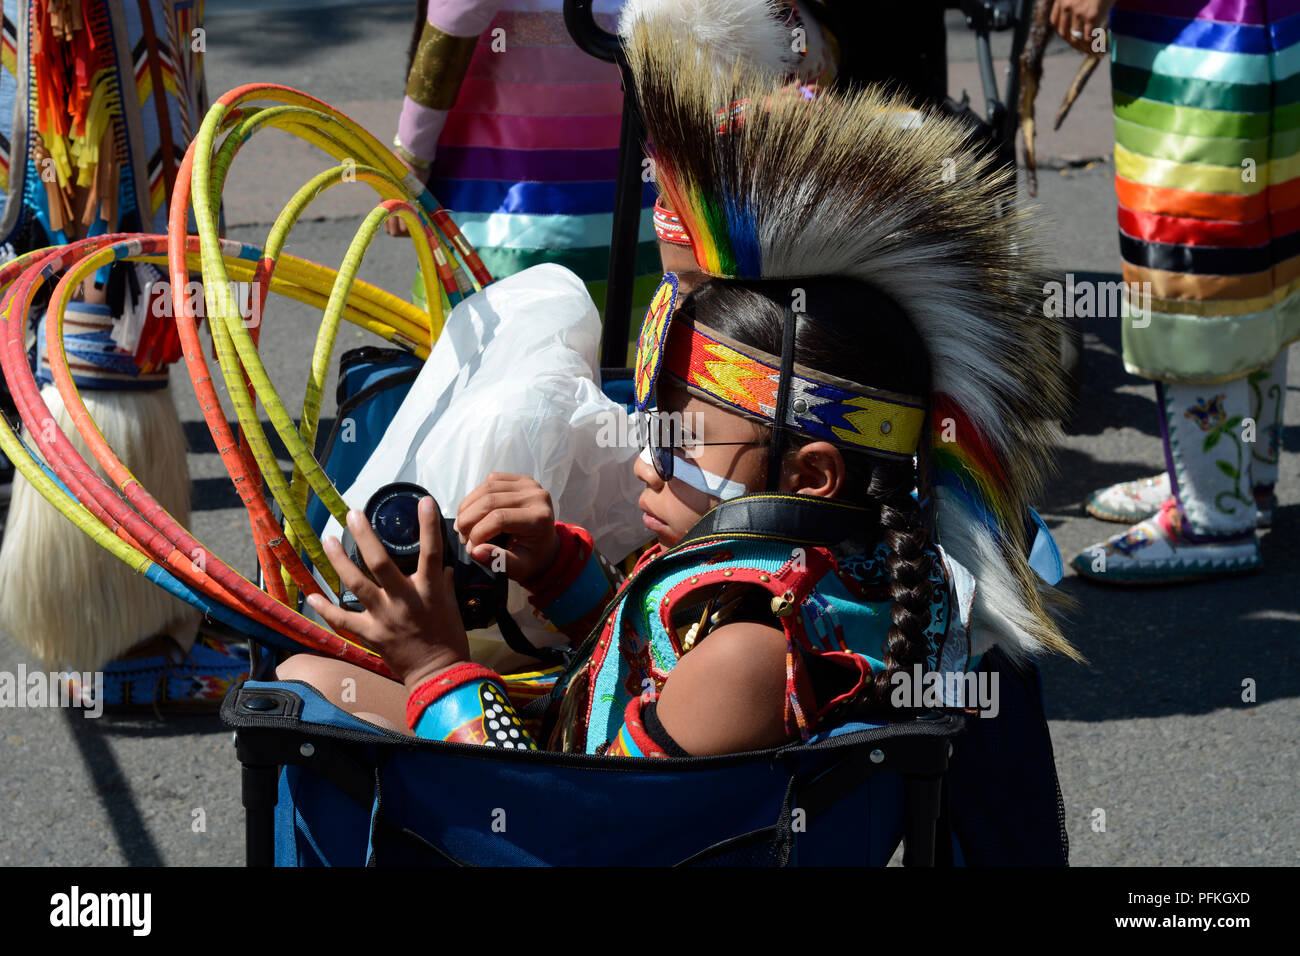 A young Native-American boy wearing traditional Plains Indian regalia at the Santa Fe Indian Market. Stock Photo